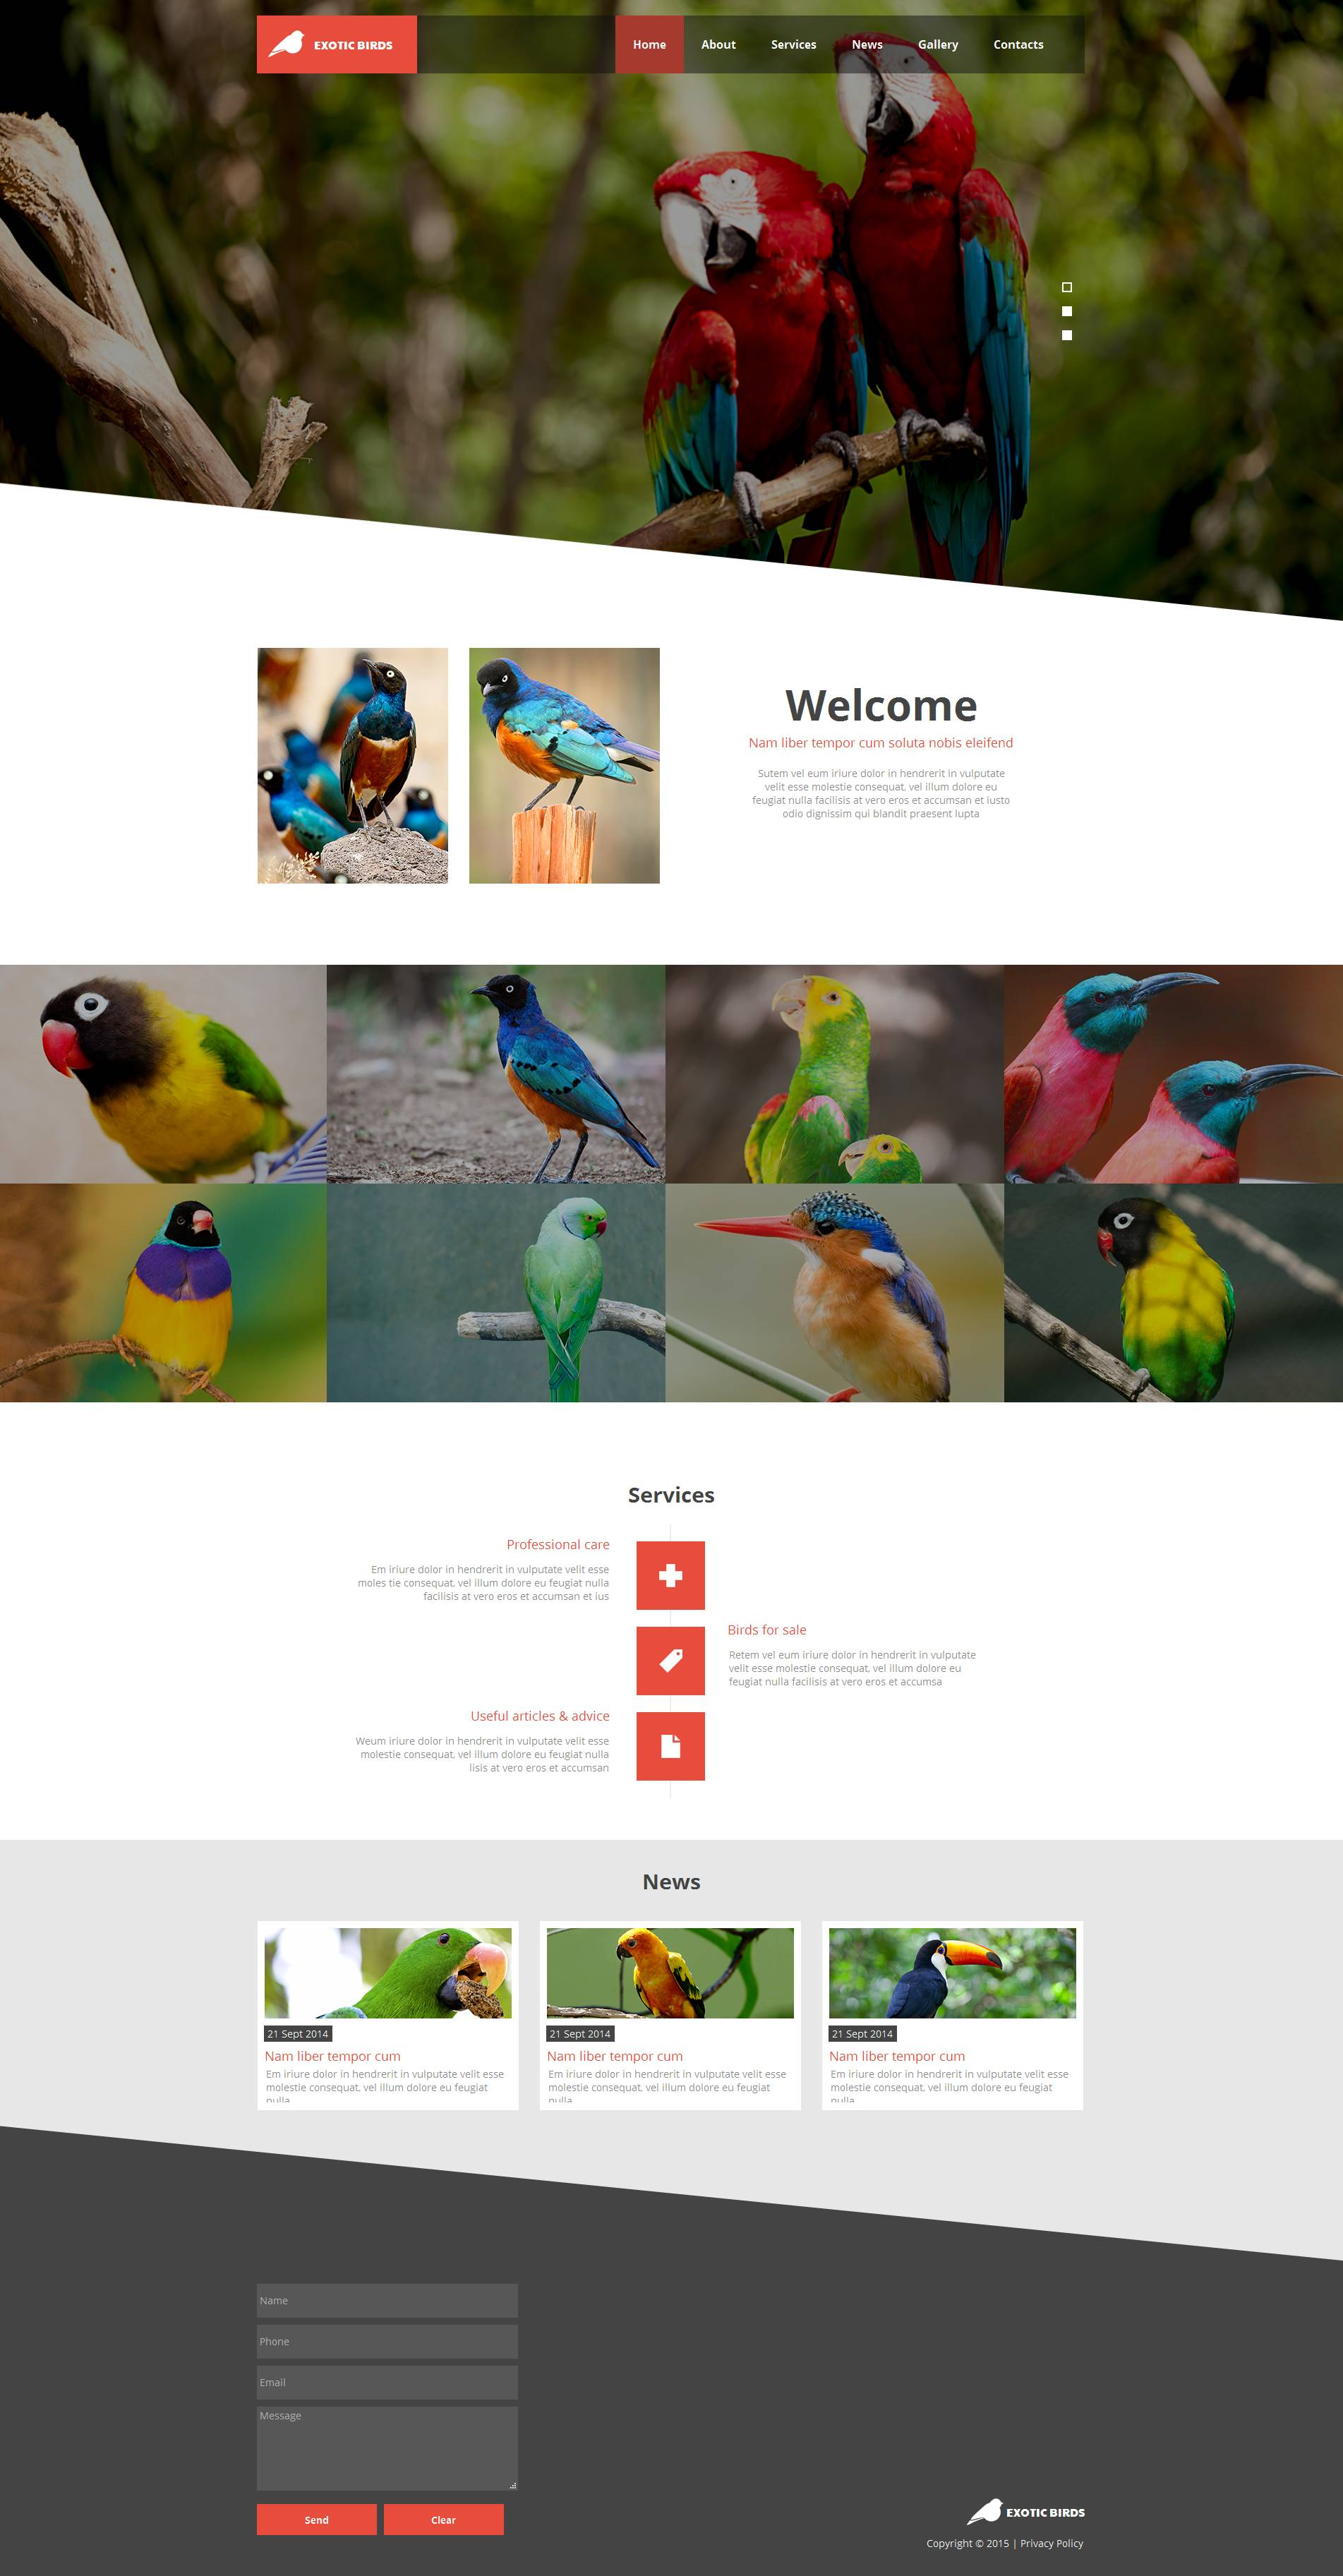 The Exotic Birds Moto CMS HTML Design 53231, one of the best Moto CMS HTML templates of its kind (animals & pets, most popular), also known as exotic birds Moto CMS HTML template, bird Moto CMS HTML template, parrot Moto CMS HTML template, parrots Moto CMS HTML template, pen-feathers Moto CMS HTML template, feather company Moto CMS HTML template, gallery Moto CMS HTML template, photo Moto CMS HTML template, photos Moto CMS HTML template, canary and related with exotic birds, bird, parrot, parrots, pen-feathers, feather company, gallery, photo, photos, canary, etc.